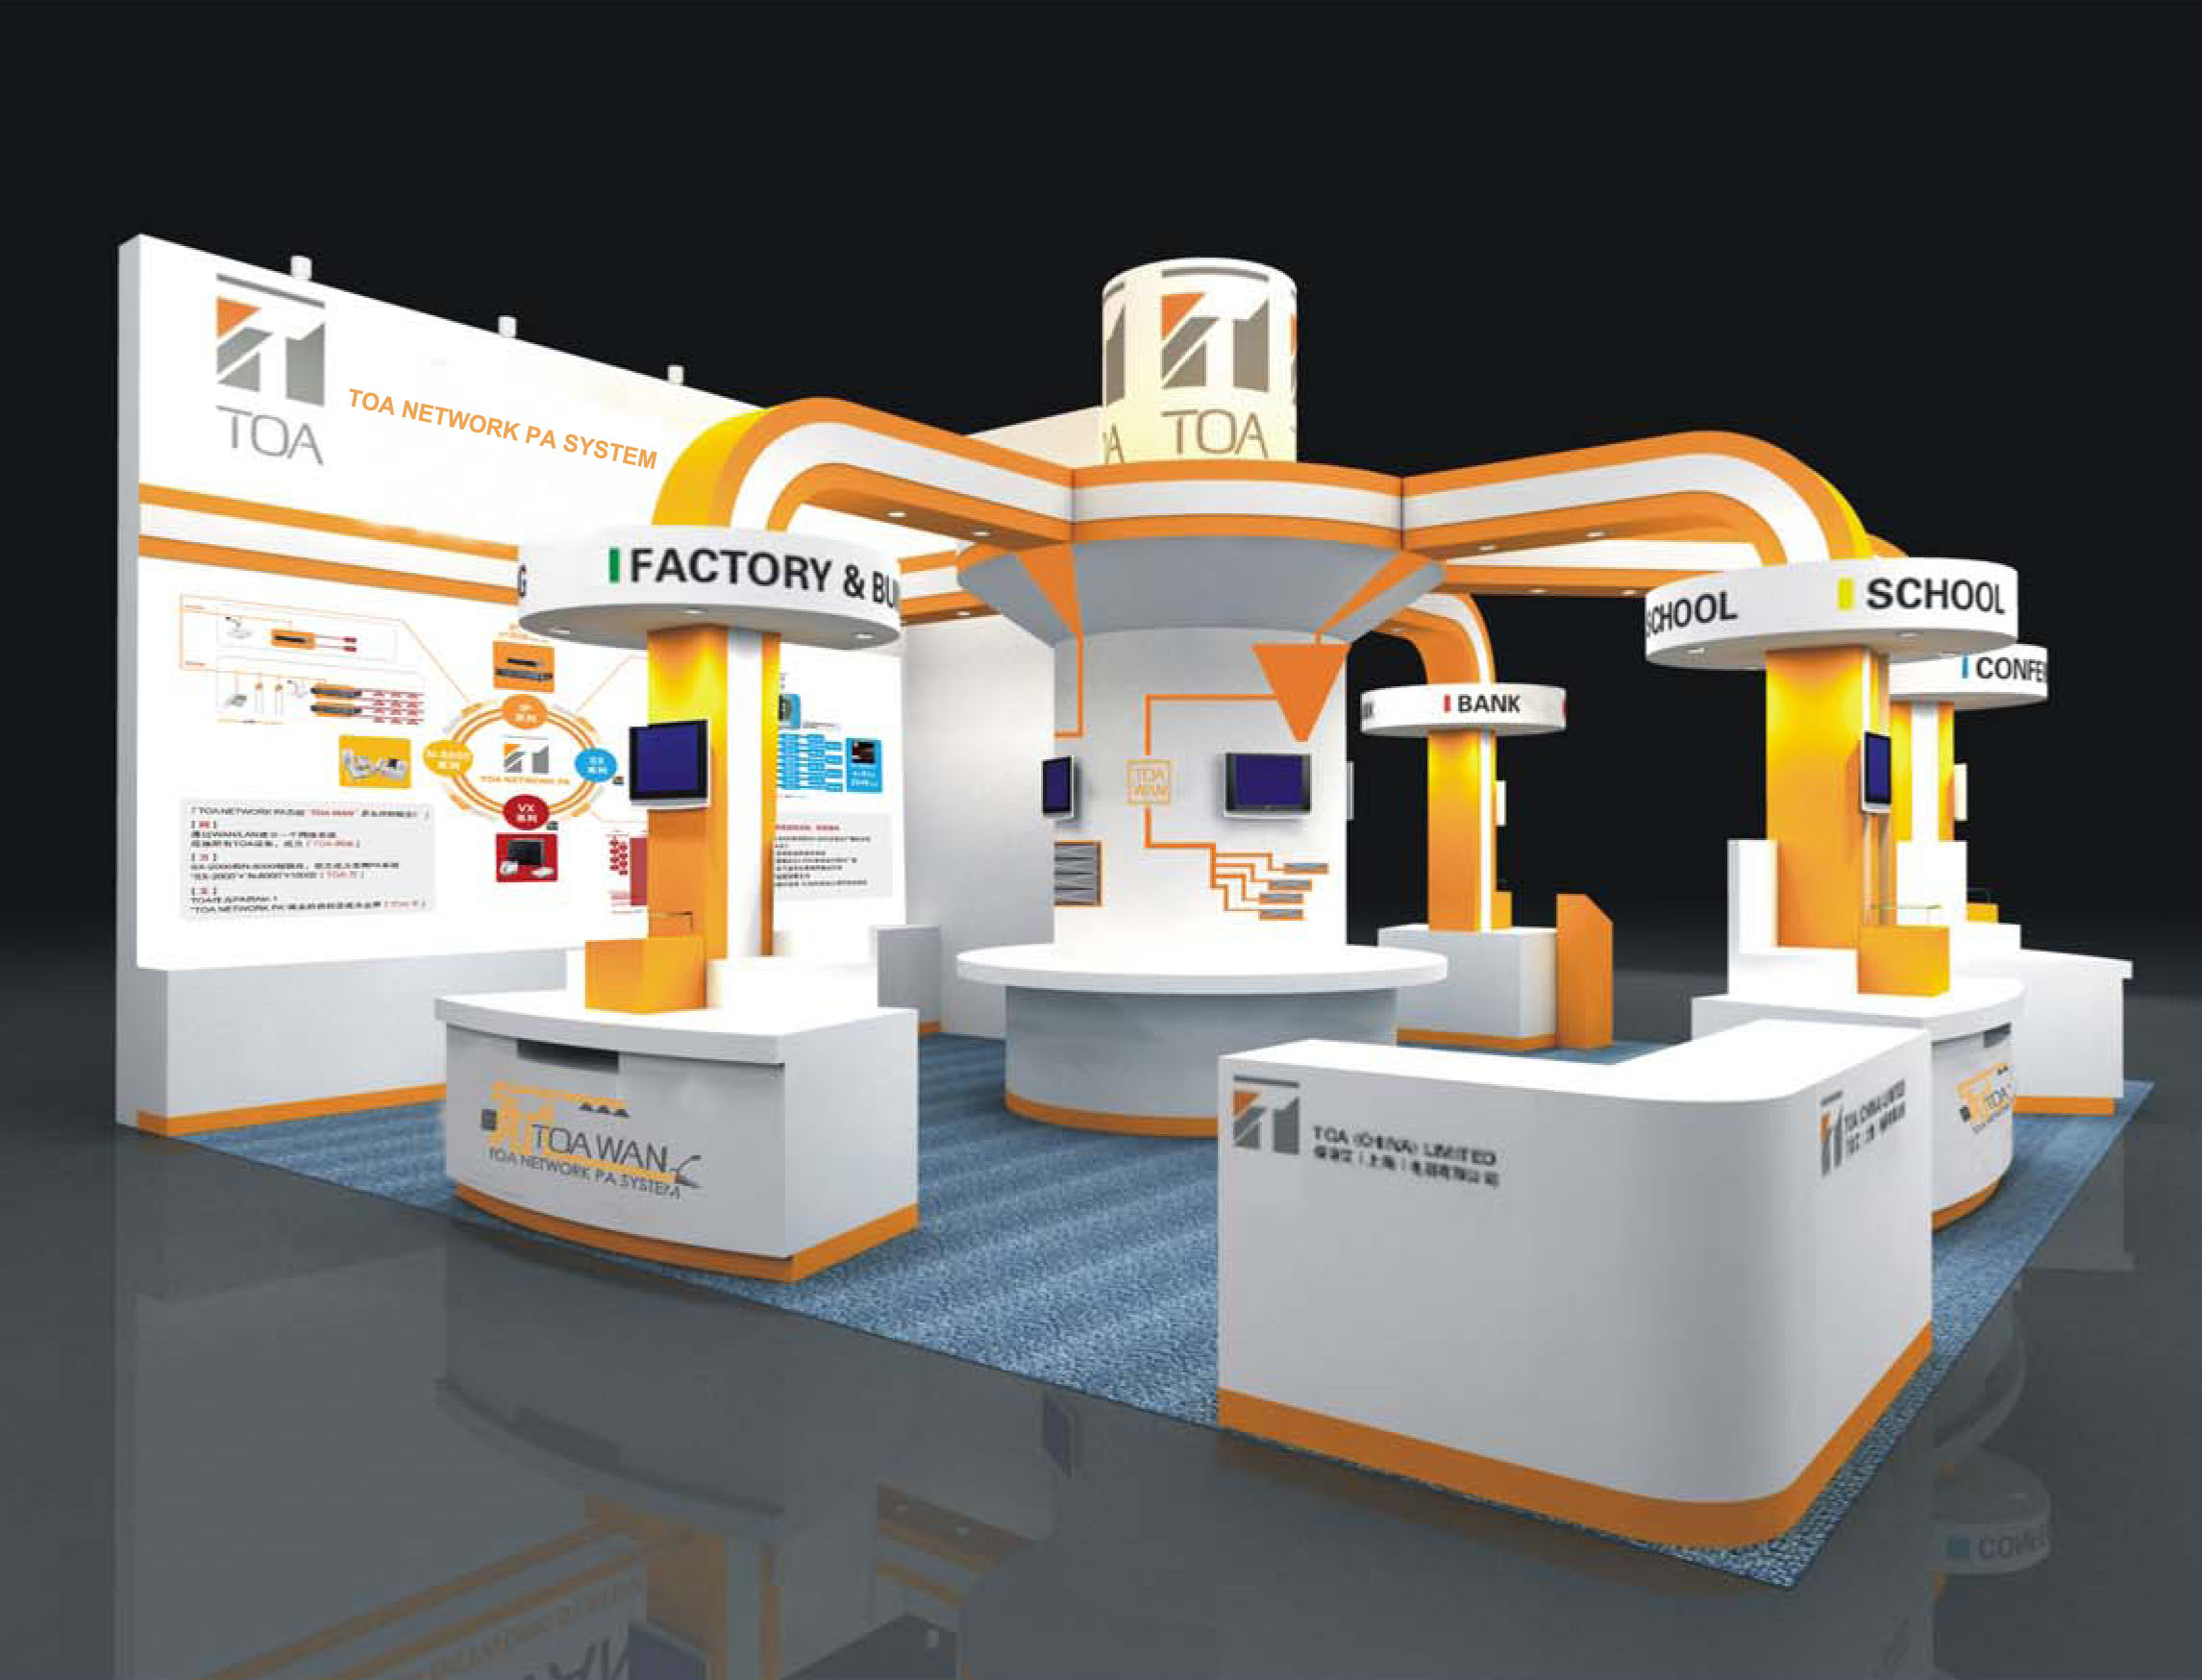 Exhibition Booth Reference : Toa exhibits at palm expo corporation